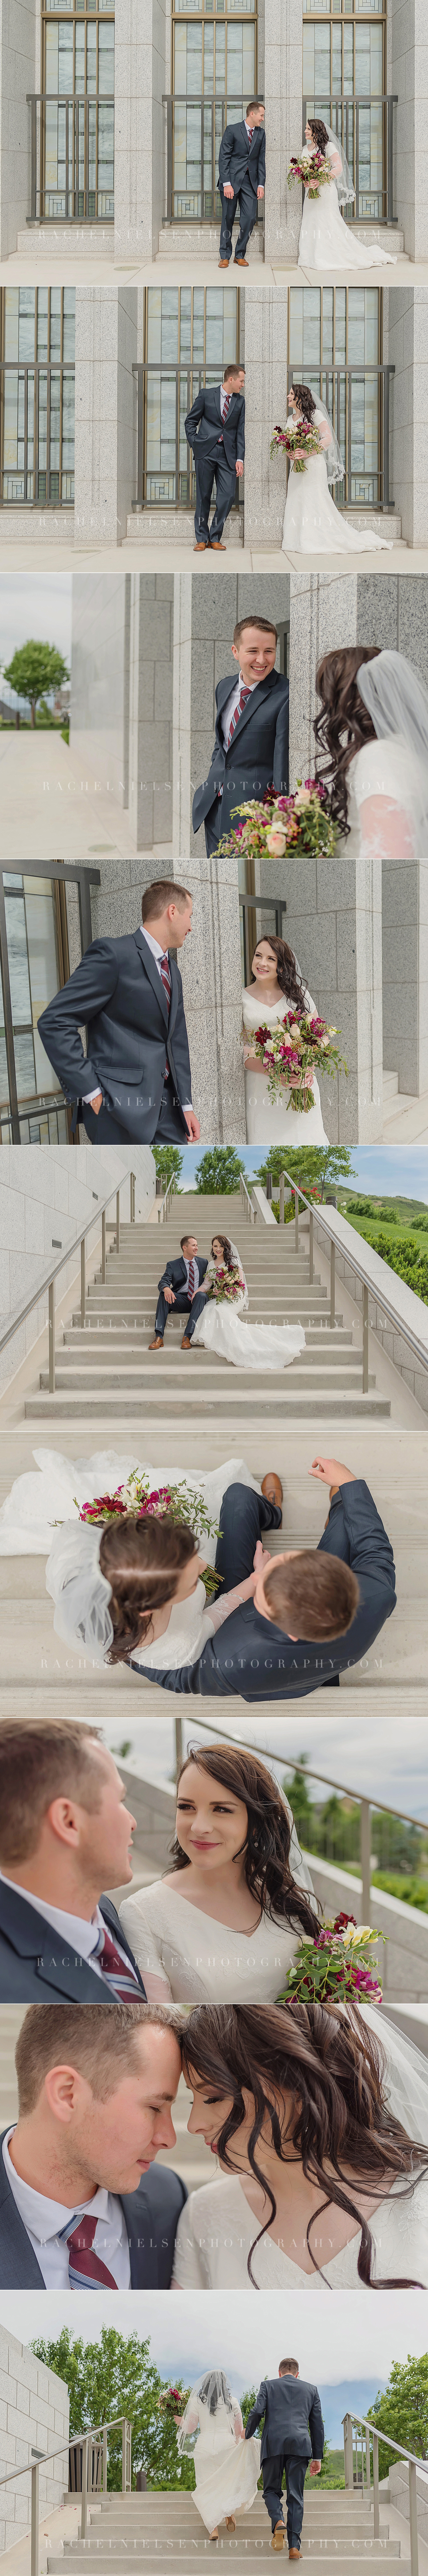 Draper-LDS-temple-wedding-18